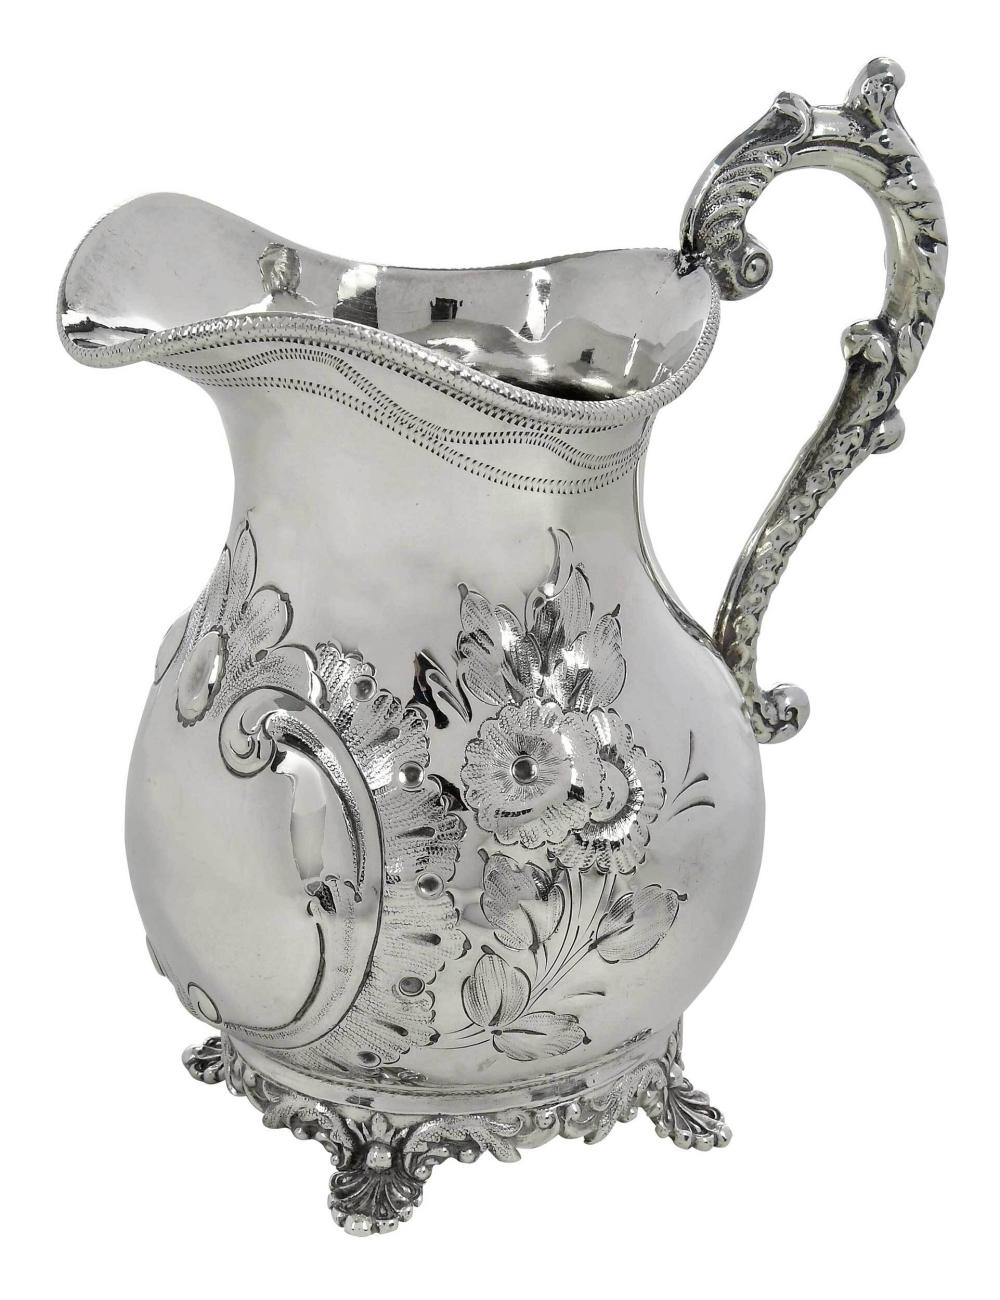 Southern Coin Silver Pitcher, Samuel Wilmot